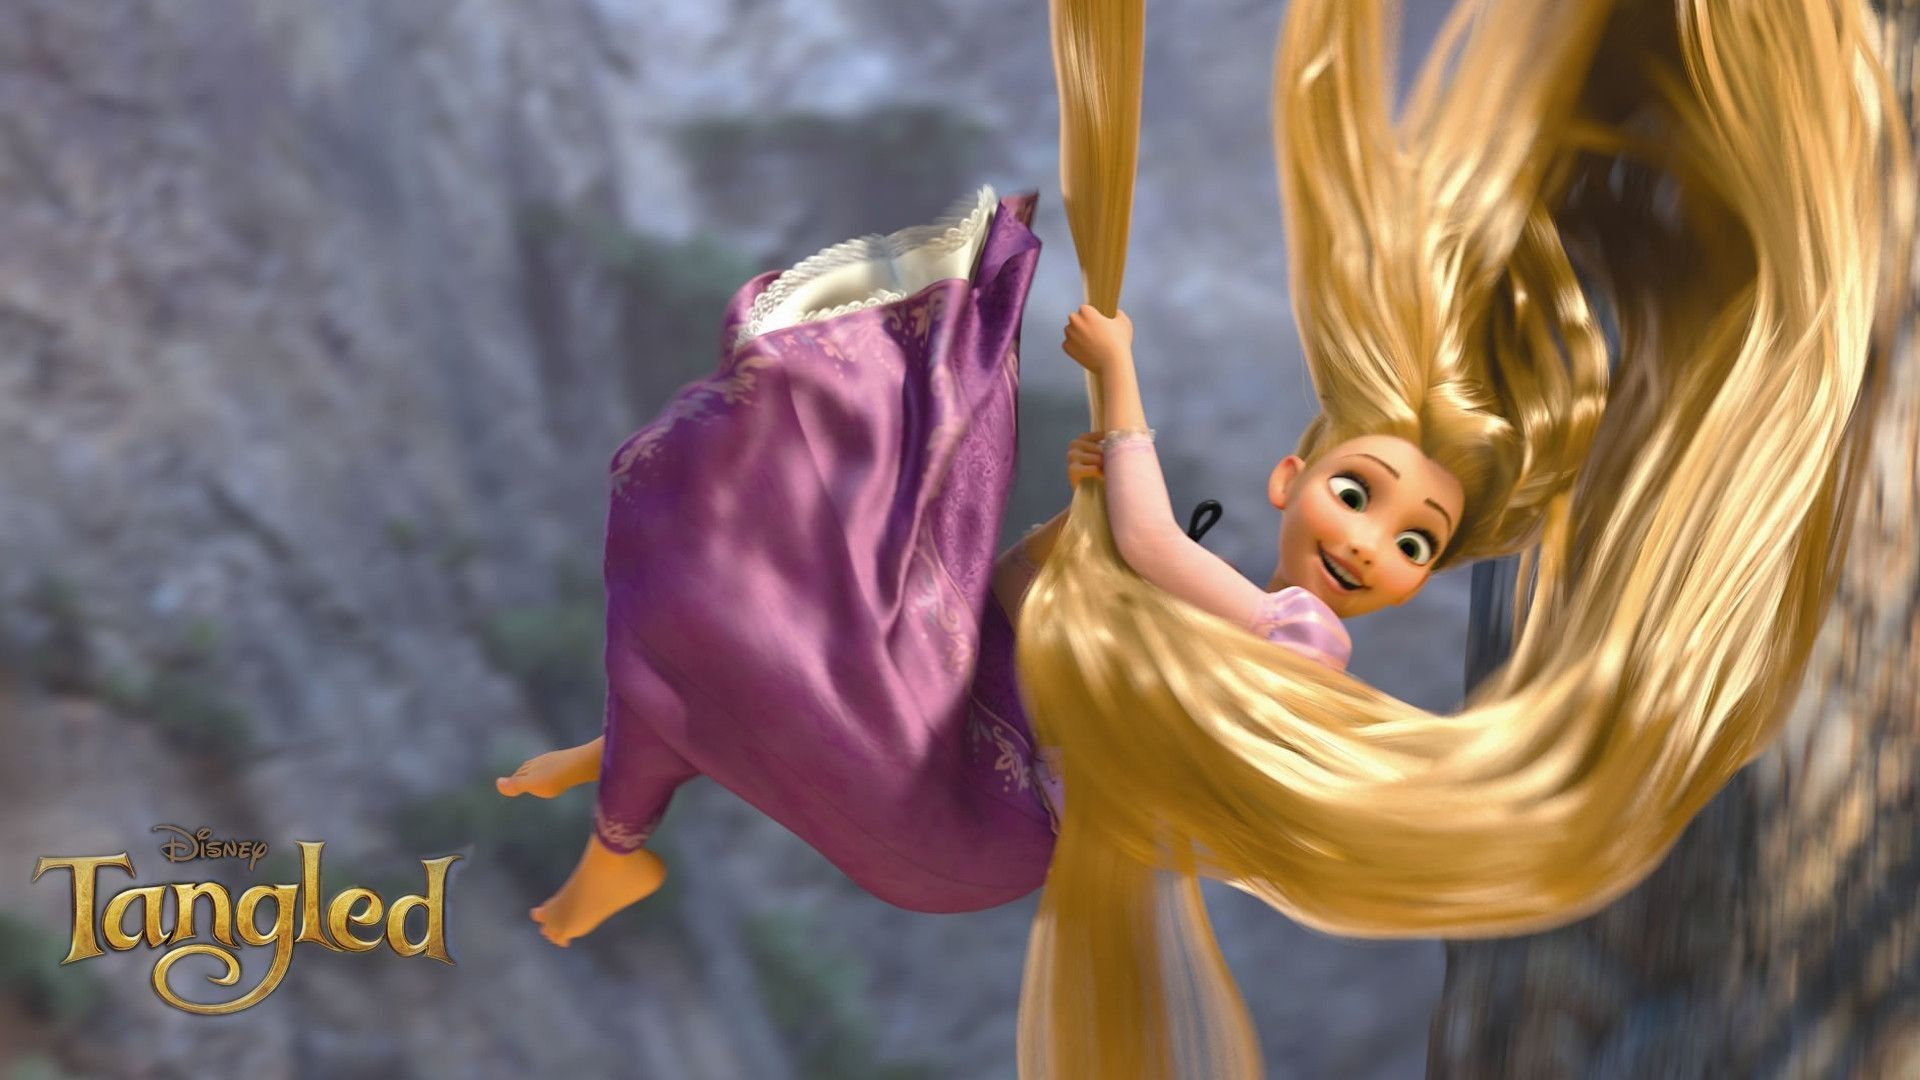 Tangled picture image